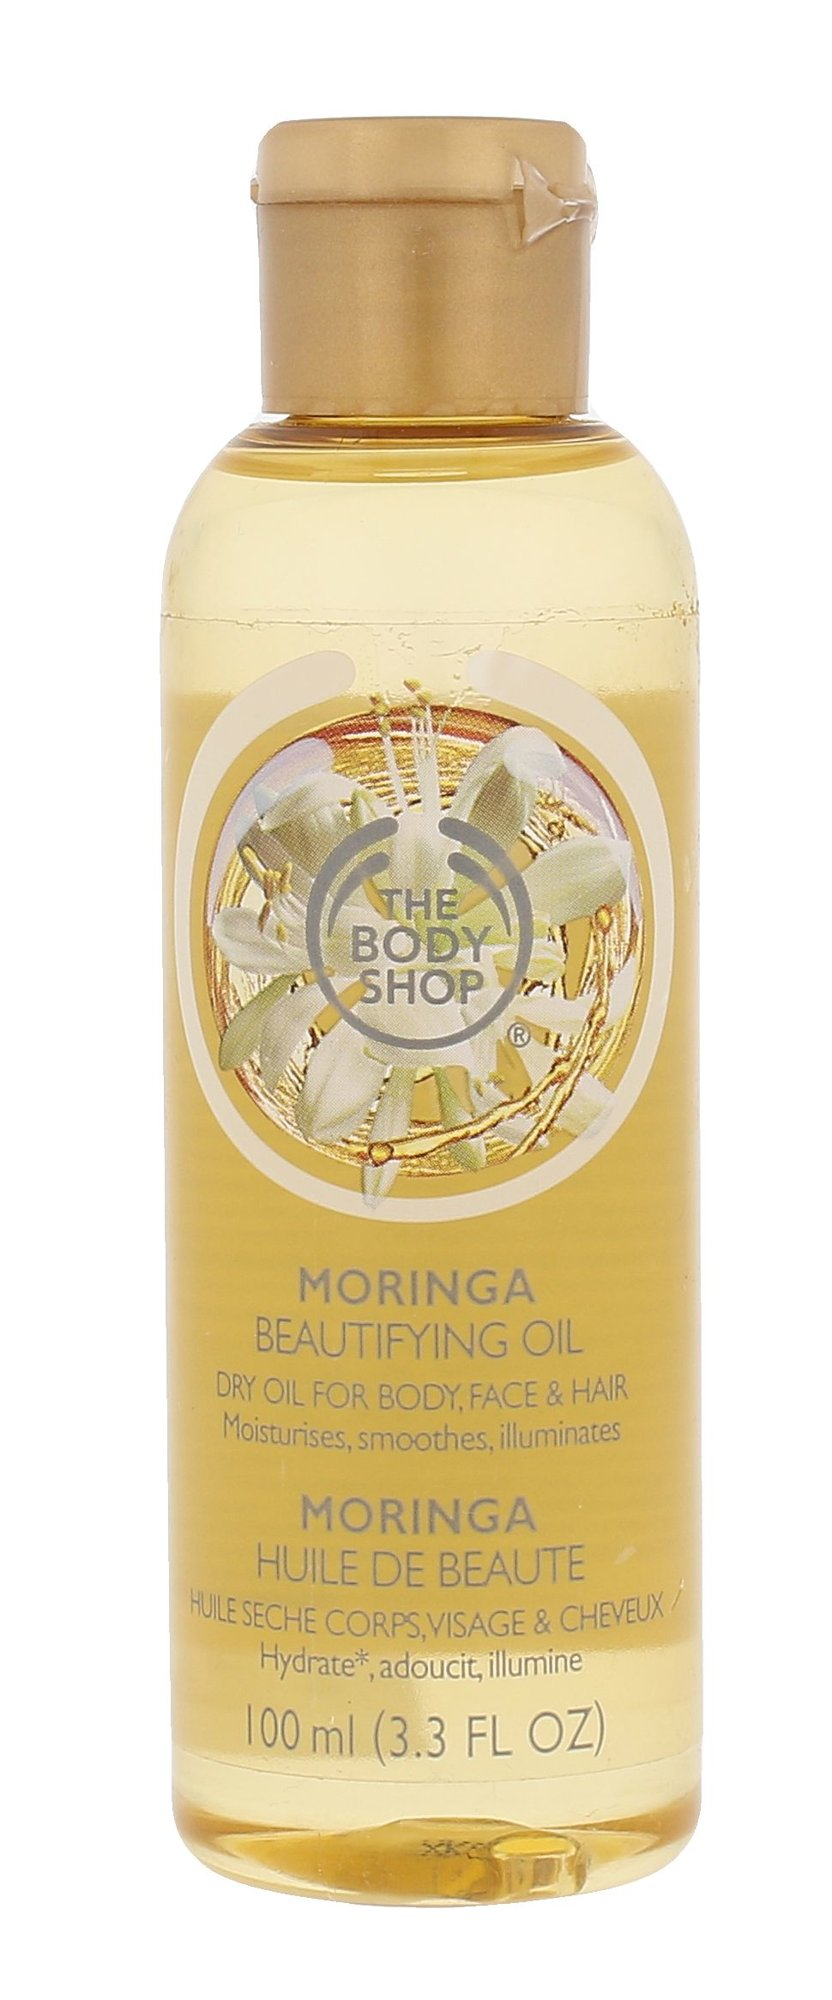 The Body Shop Moringa Cosmetic 100ml  Beautifying Oil